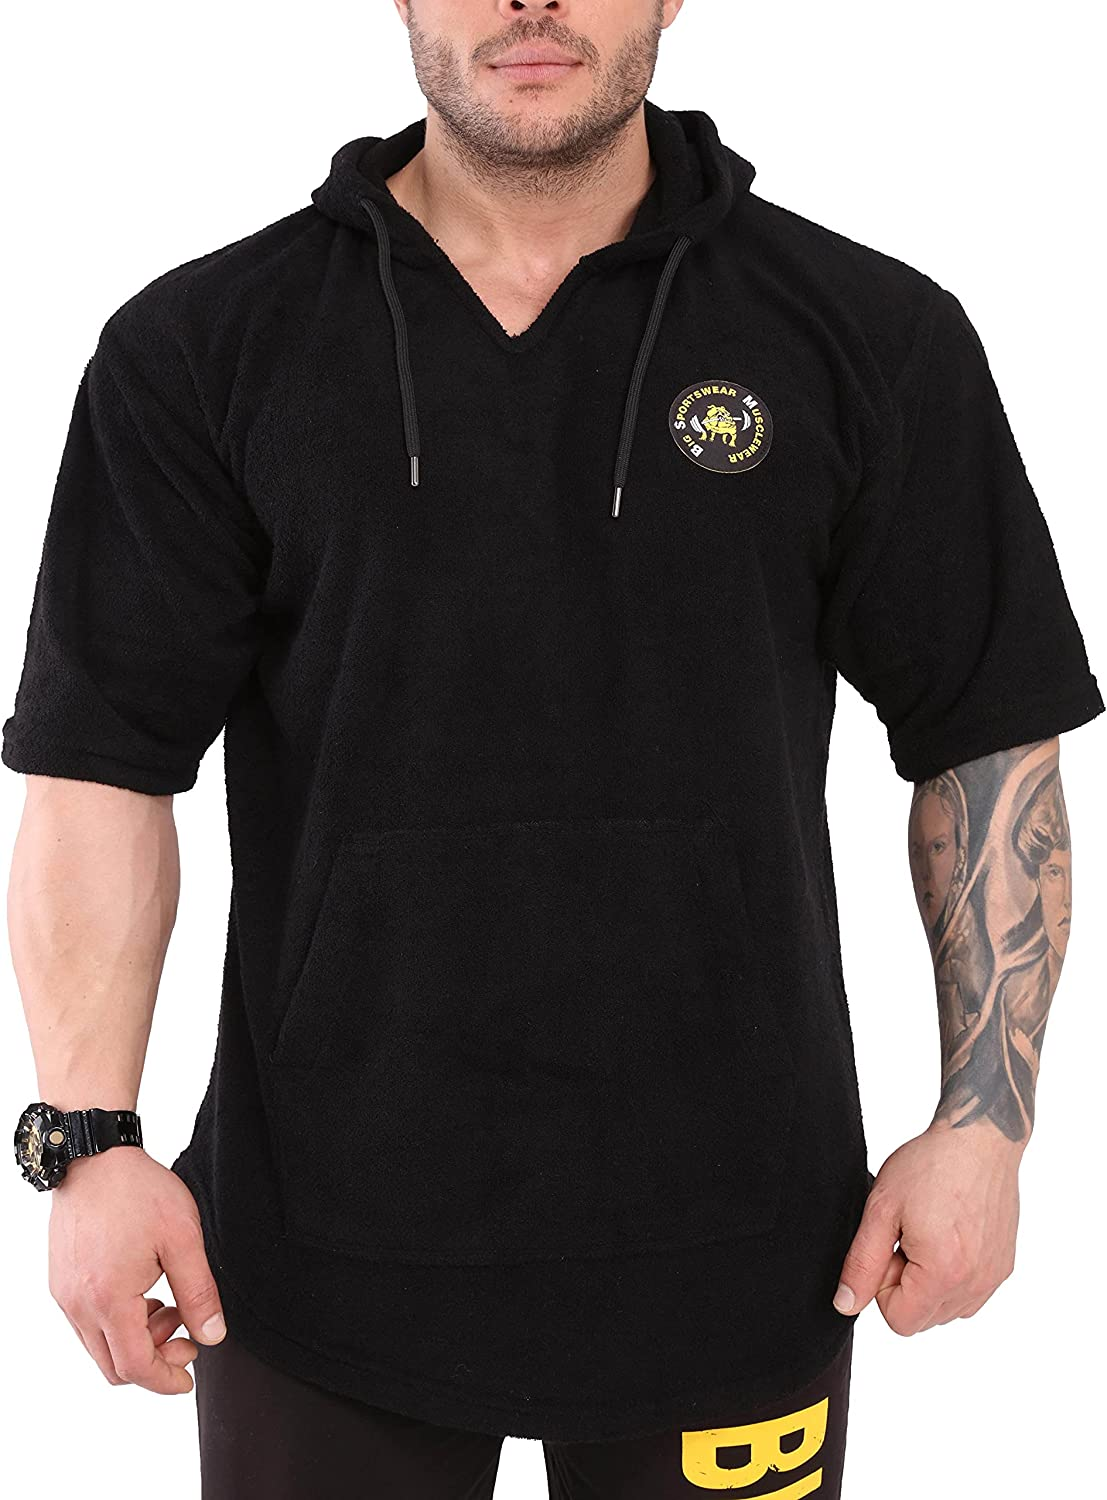 Product Men's wholesale Hooded Gym T-Shirt with Texture Oversize Pockets Towel